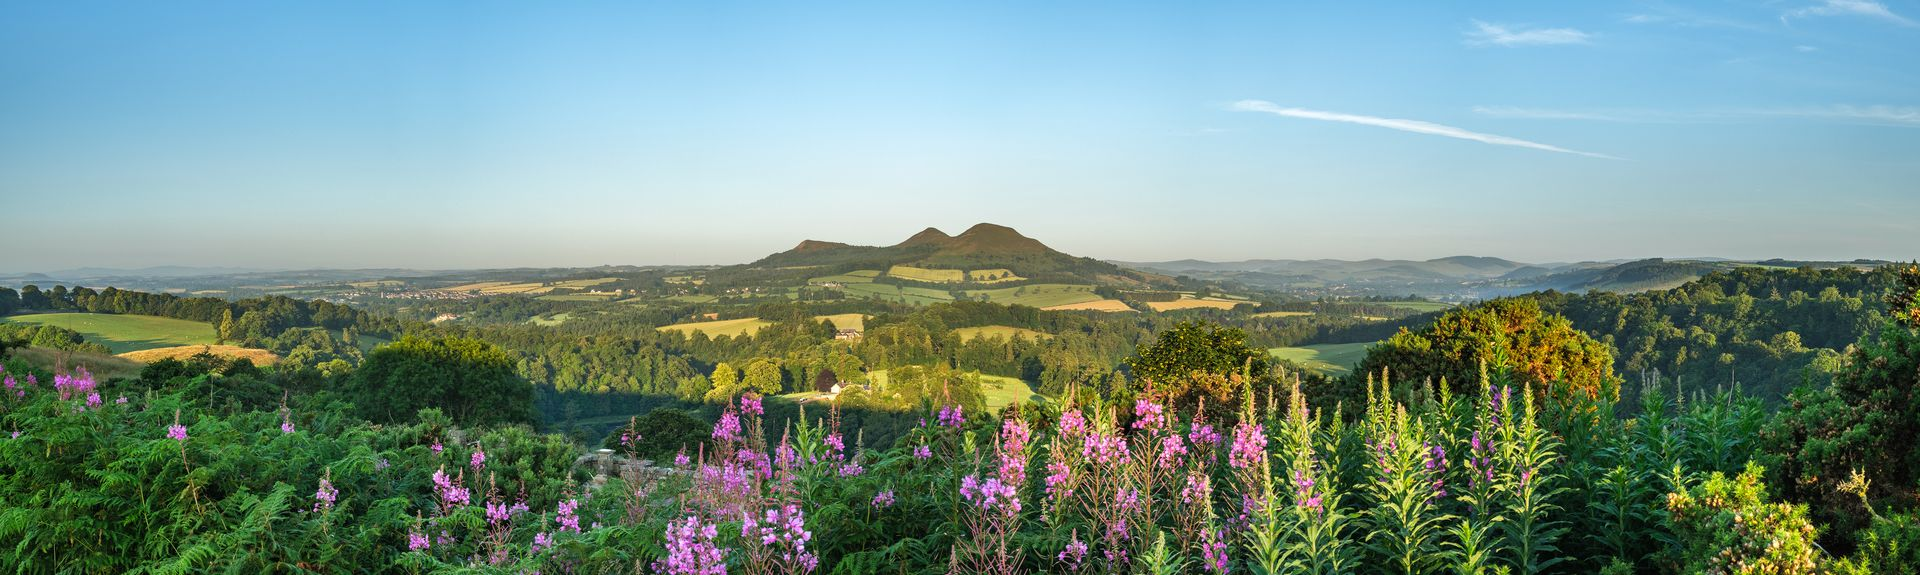 Scottish Borders, Scozia, Regno Unito